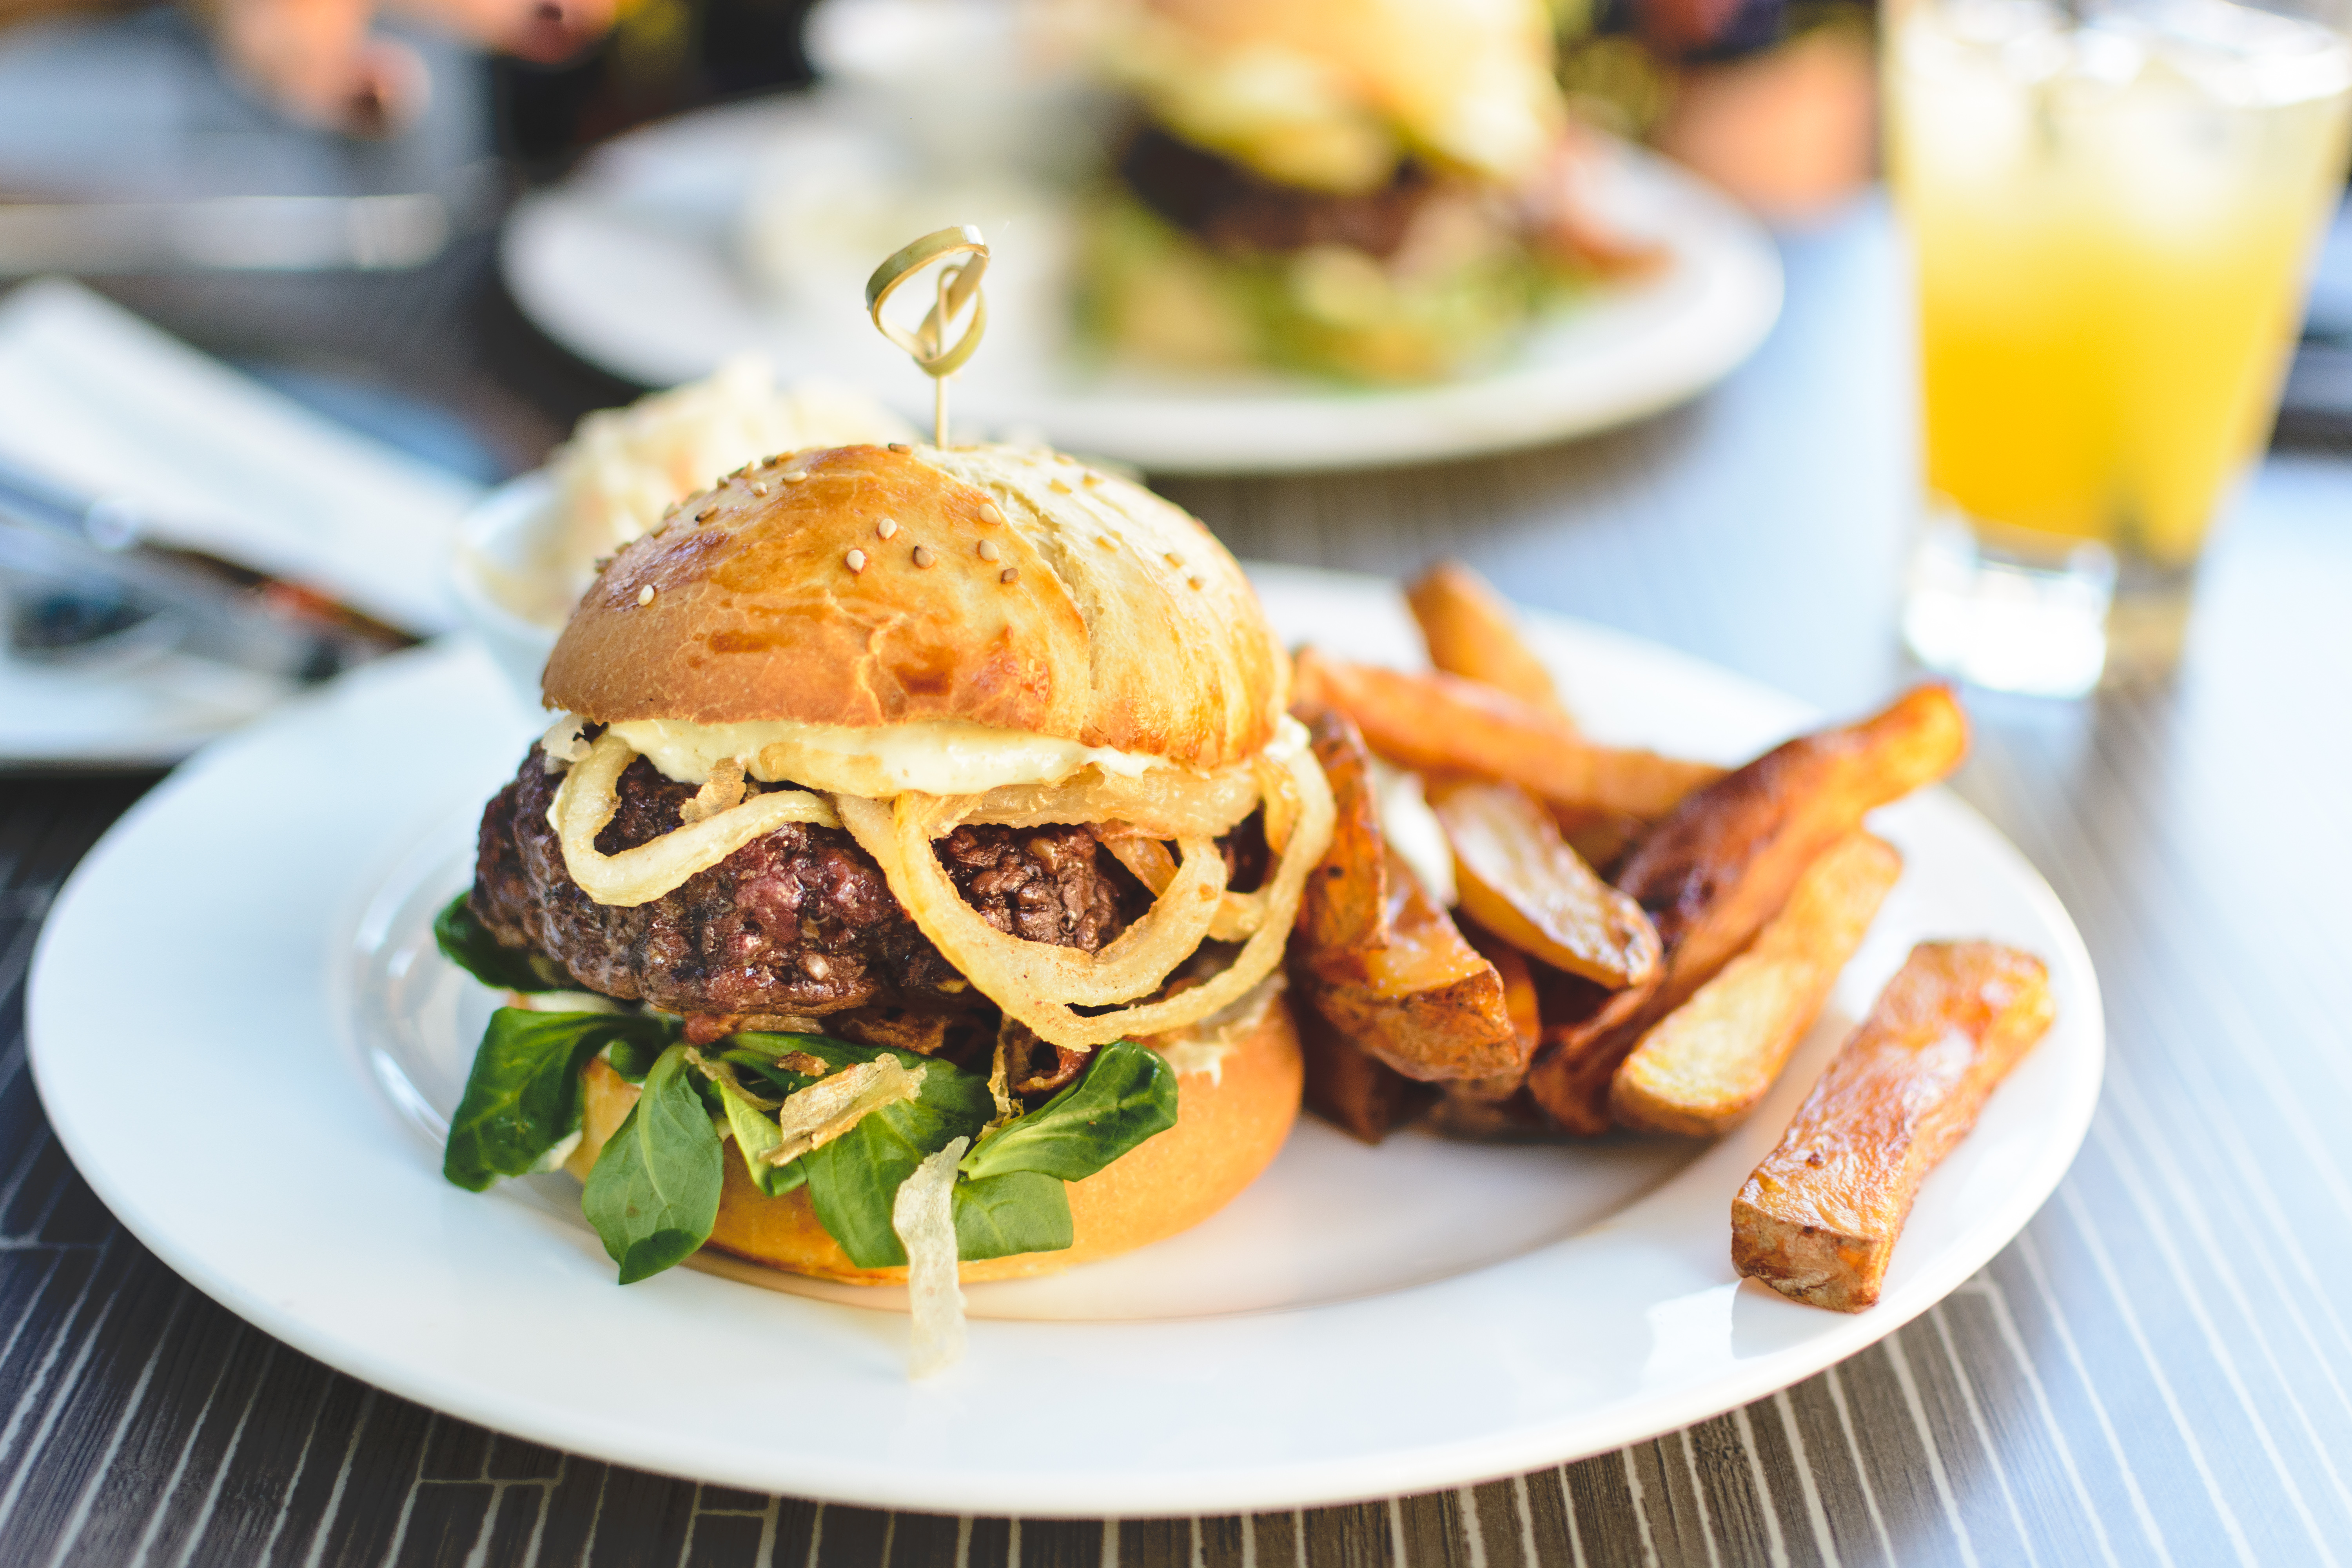 Summer juicy beef burger